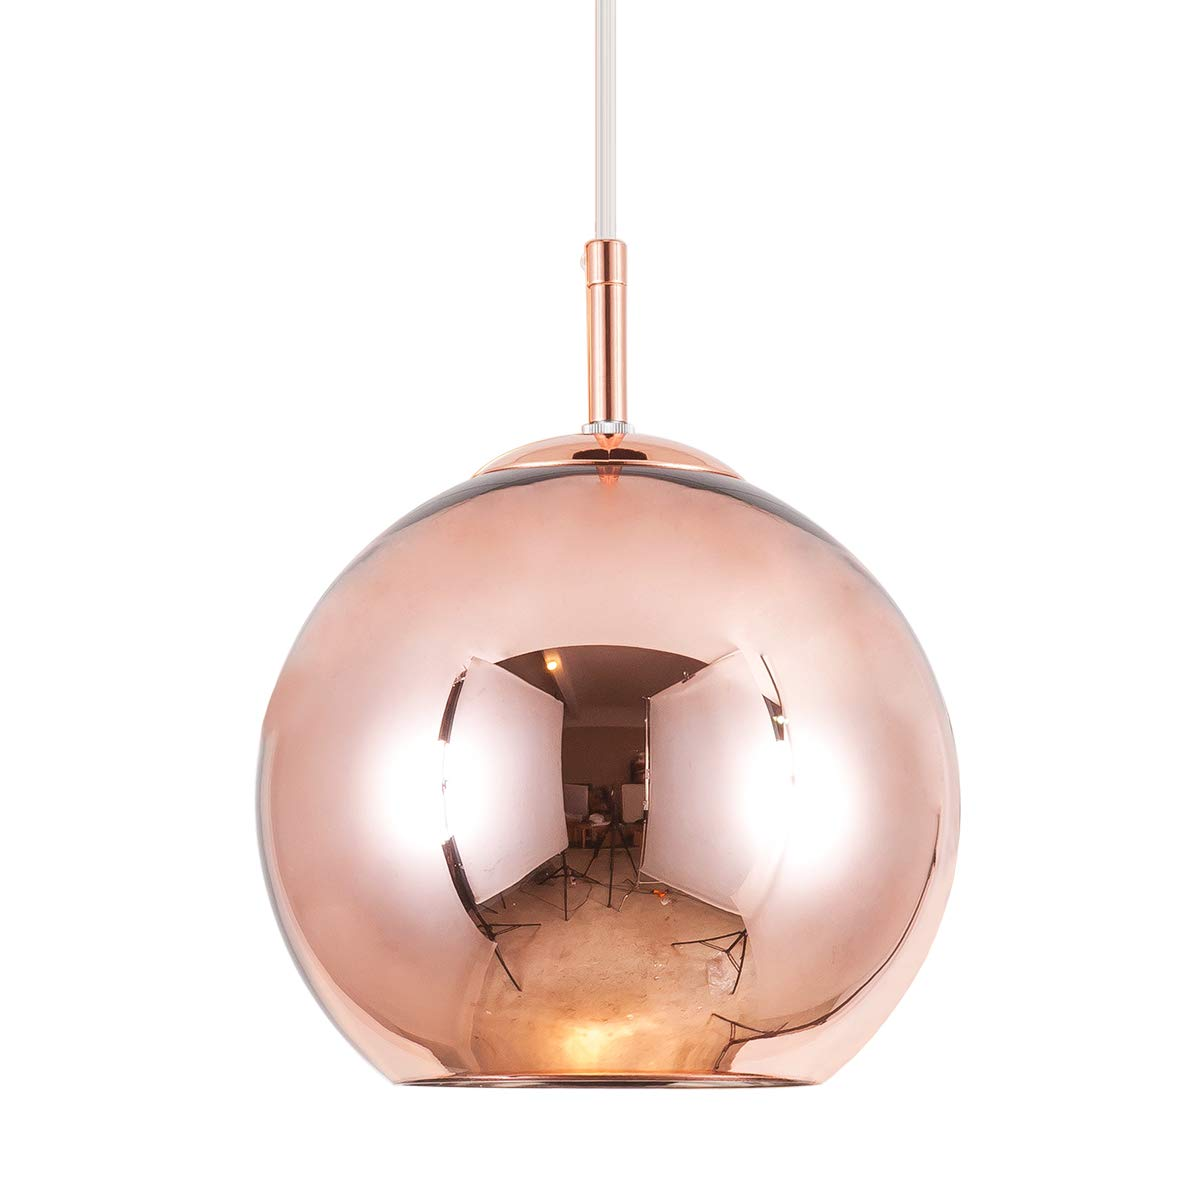 Mzithern Modern Mini Globe Pendant Lighting with Handblown Clear Glass, Adjustable Mirror Ball Pendant Lamp for Living Room Kitchen Island Hallways, Copper Plated Finish, 8 inches